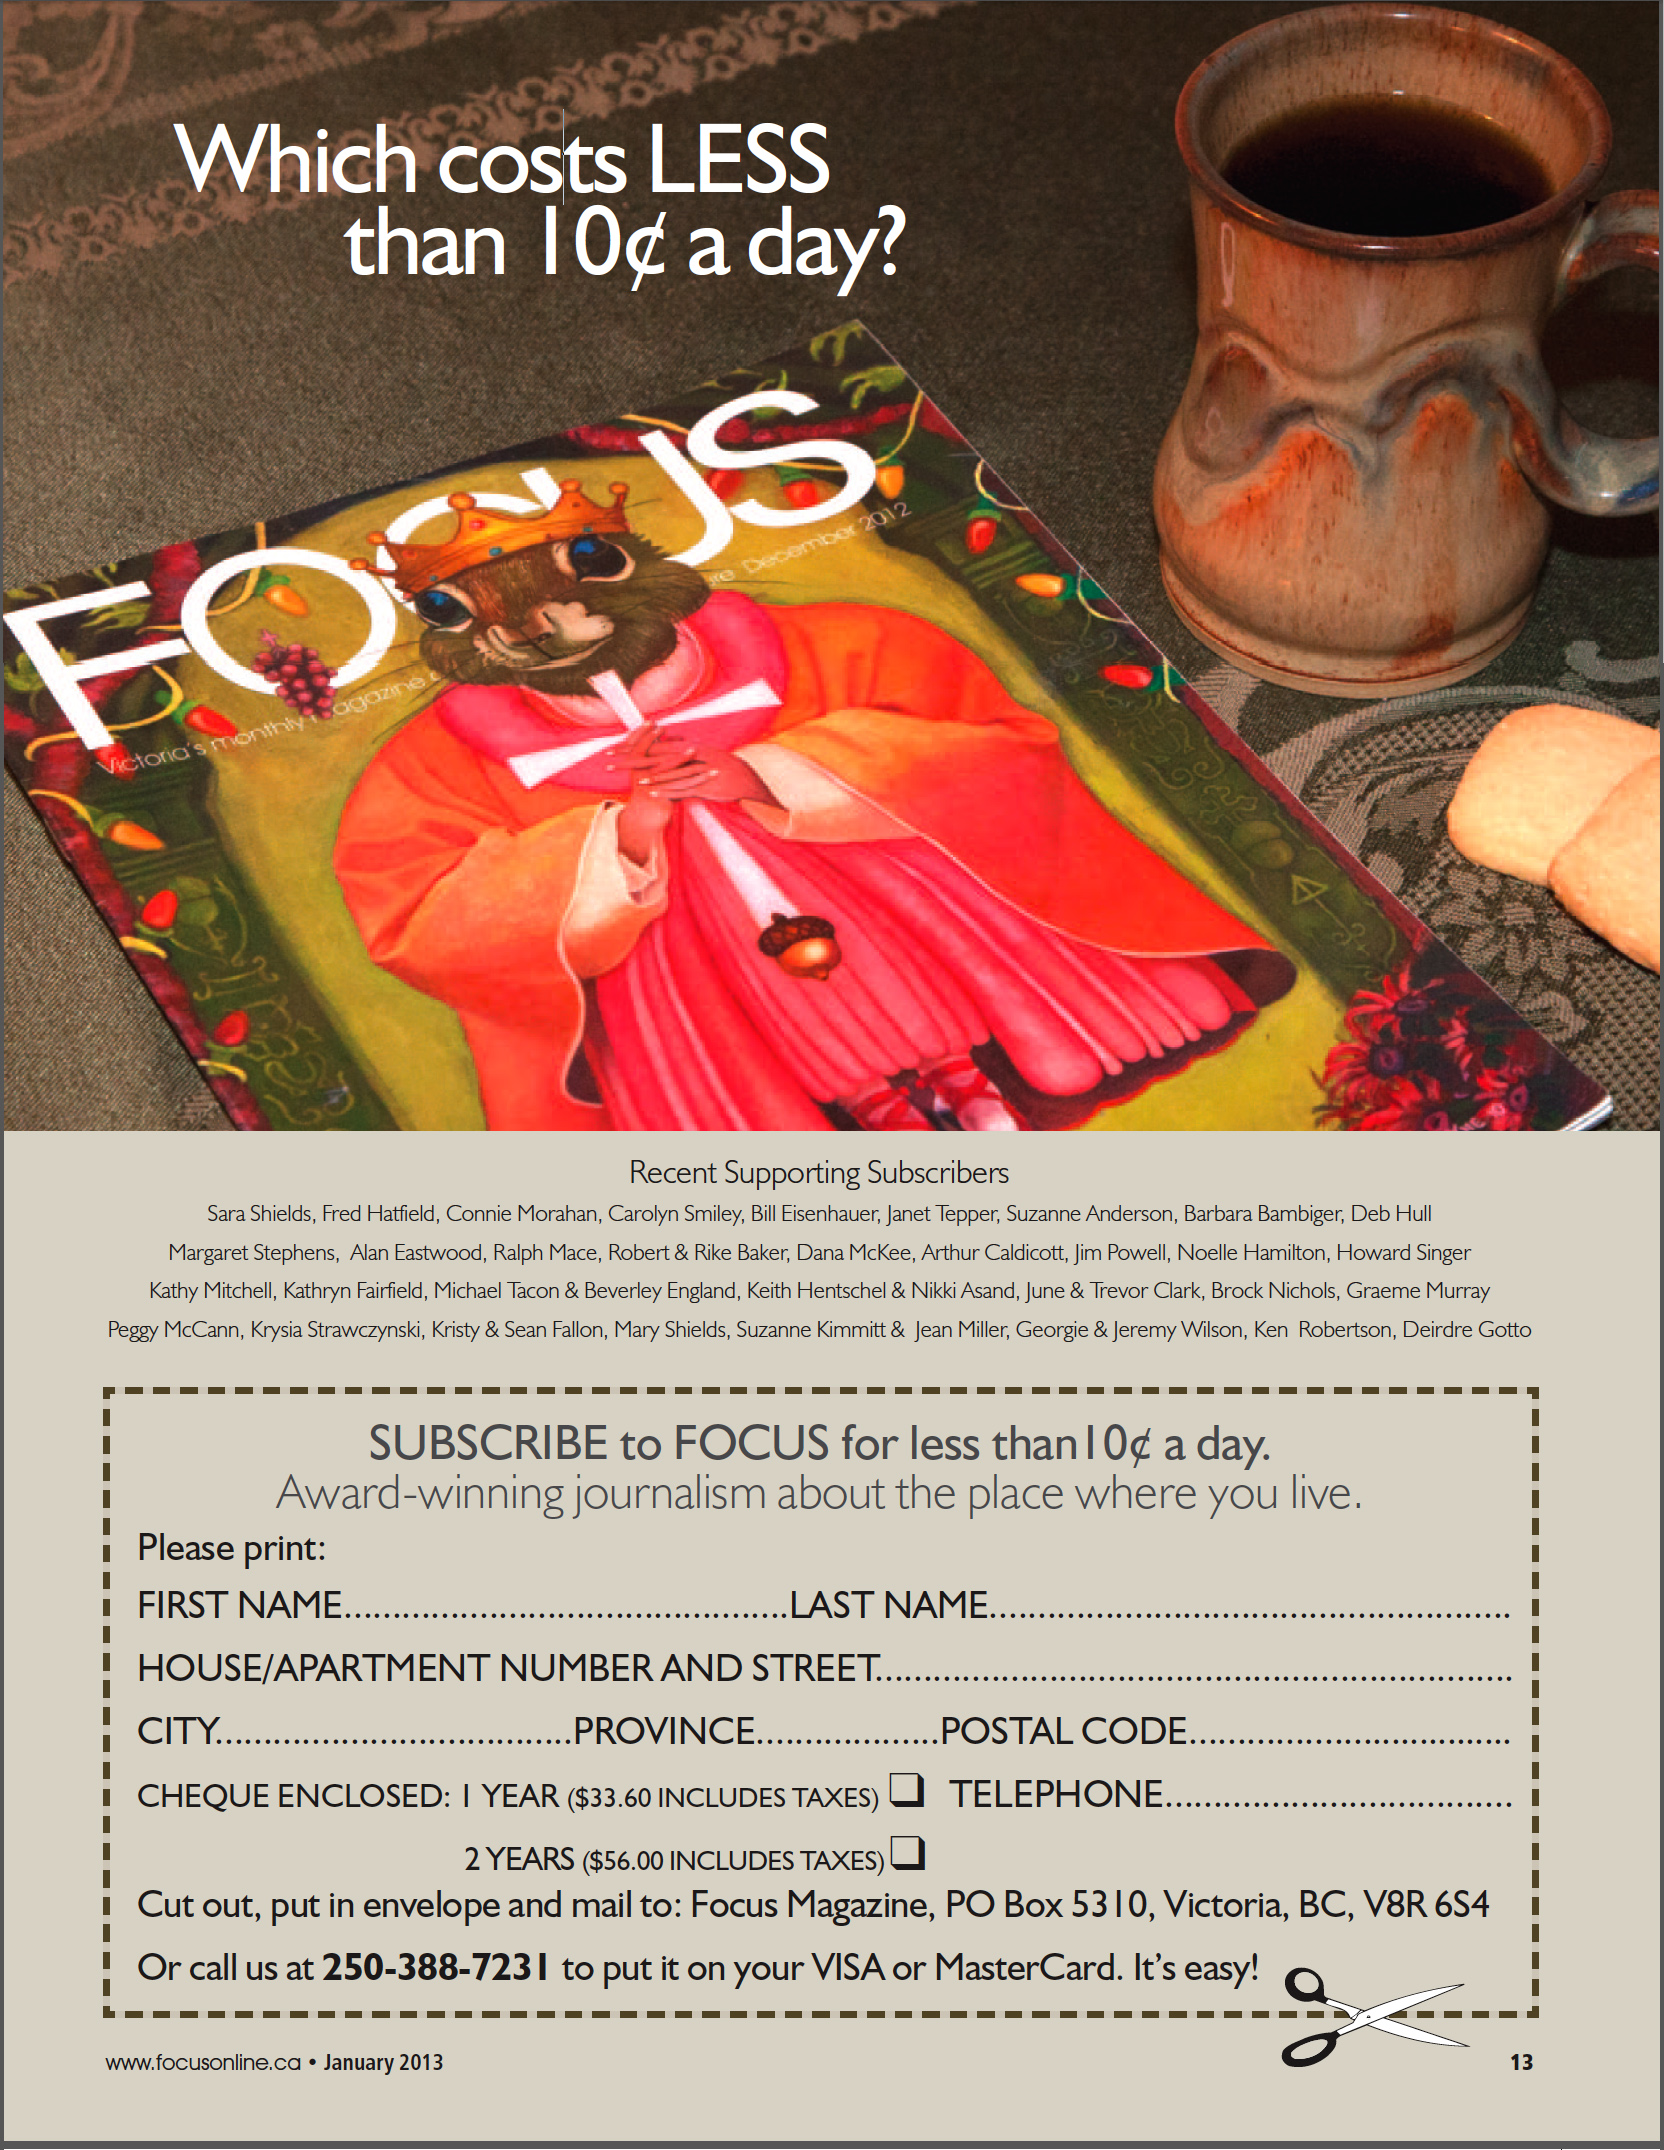 FFocus Magazine, January 2013, Subscription Advertisement, pg. 13